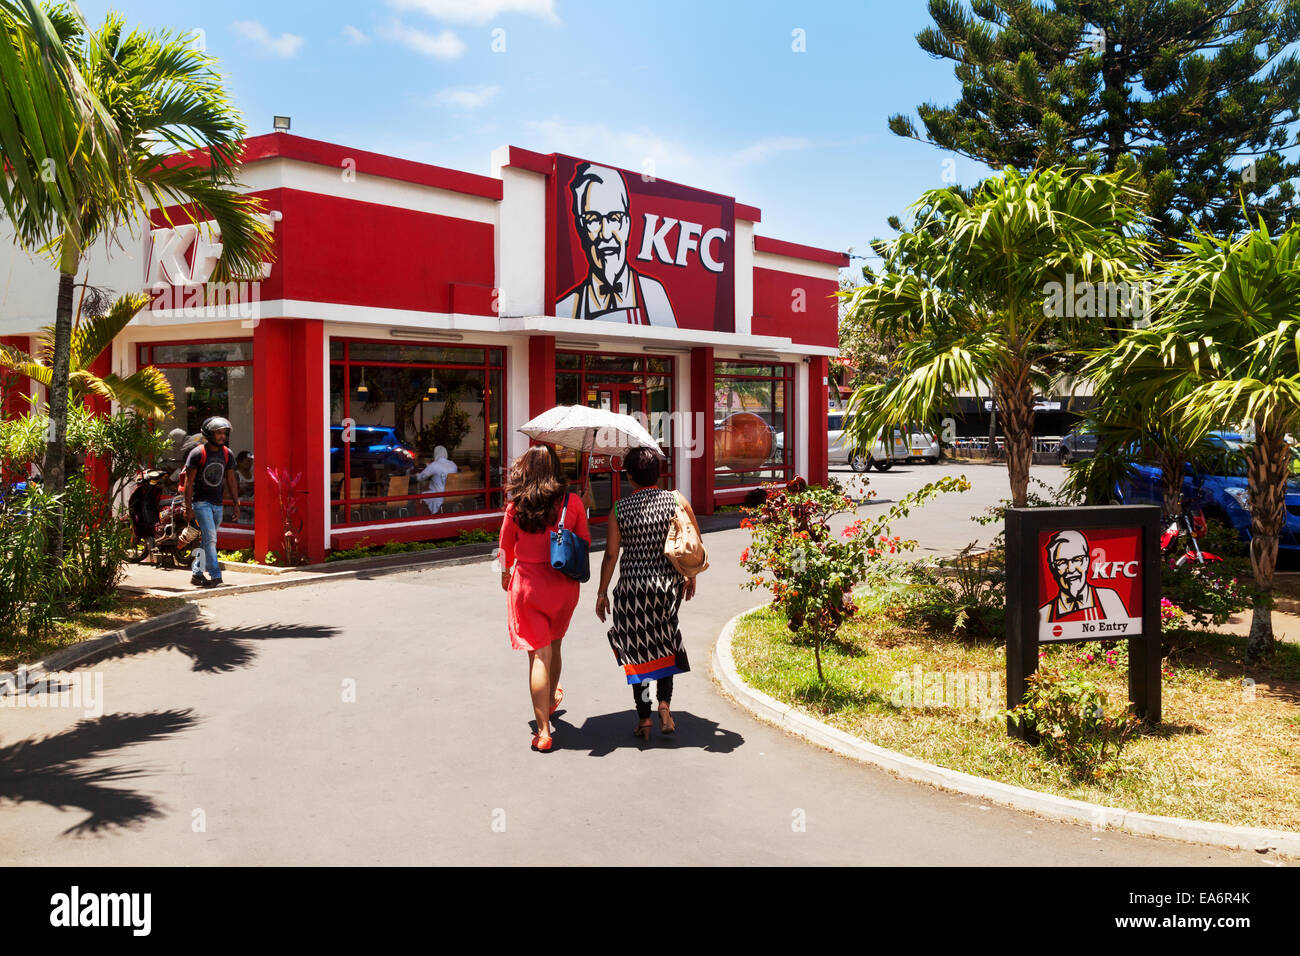 People going to KFC ( Kentucky Fried Chicken ), Flacq town, Mauritius - Stock Image